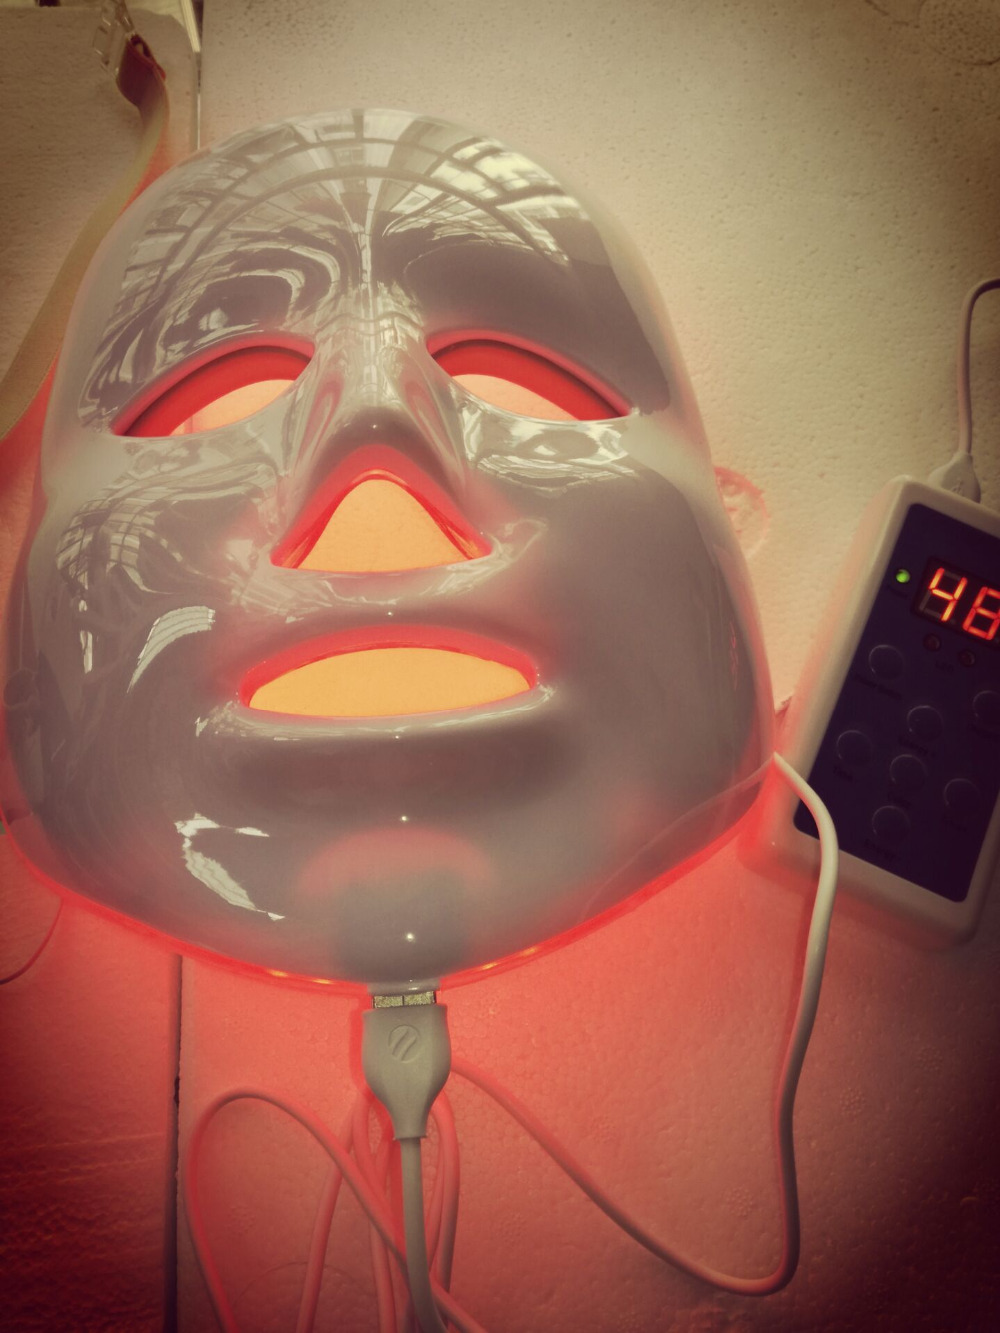 Face Skin Care Tool LED Electric Facial Mask Skin PDT Skin Rejuvenation Therapy beauty salon Anti-Aging Wrinkle Removal